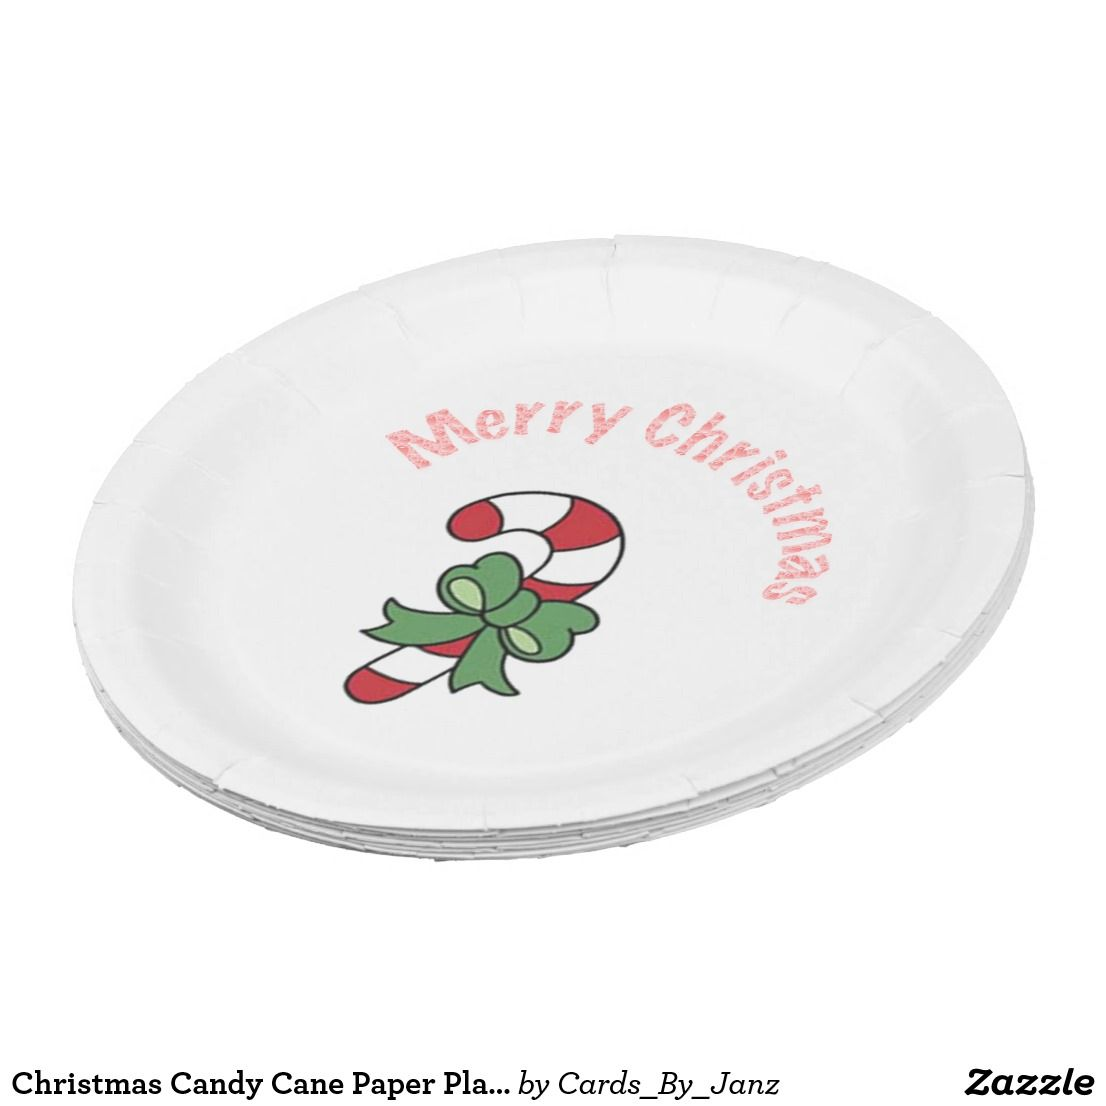 Christmas Candy Cane Paper Plates by Janz 9 inch  sc 1 st  Pinterest & Christmas Candy Cane Paper Plates by Janz 9 inch   ******GIFT GUIDE ...